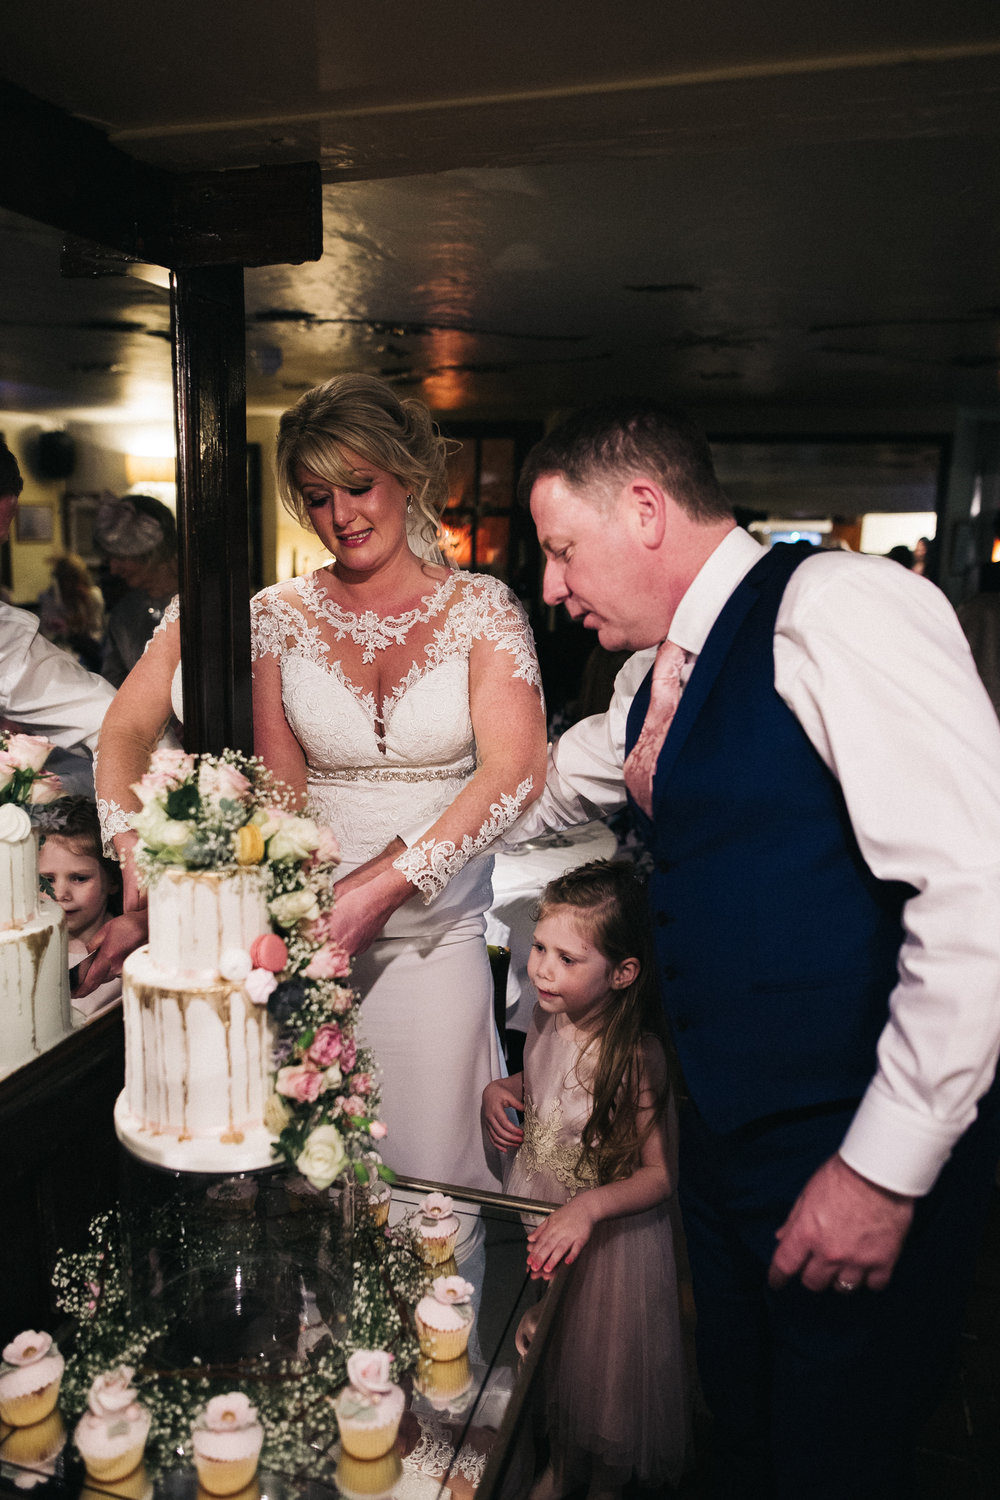 the bride and groom cut the cake. cleveland tontine wedding teesside north yorkshire - relaxed and creative wedding photographer